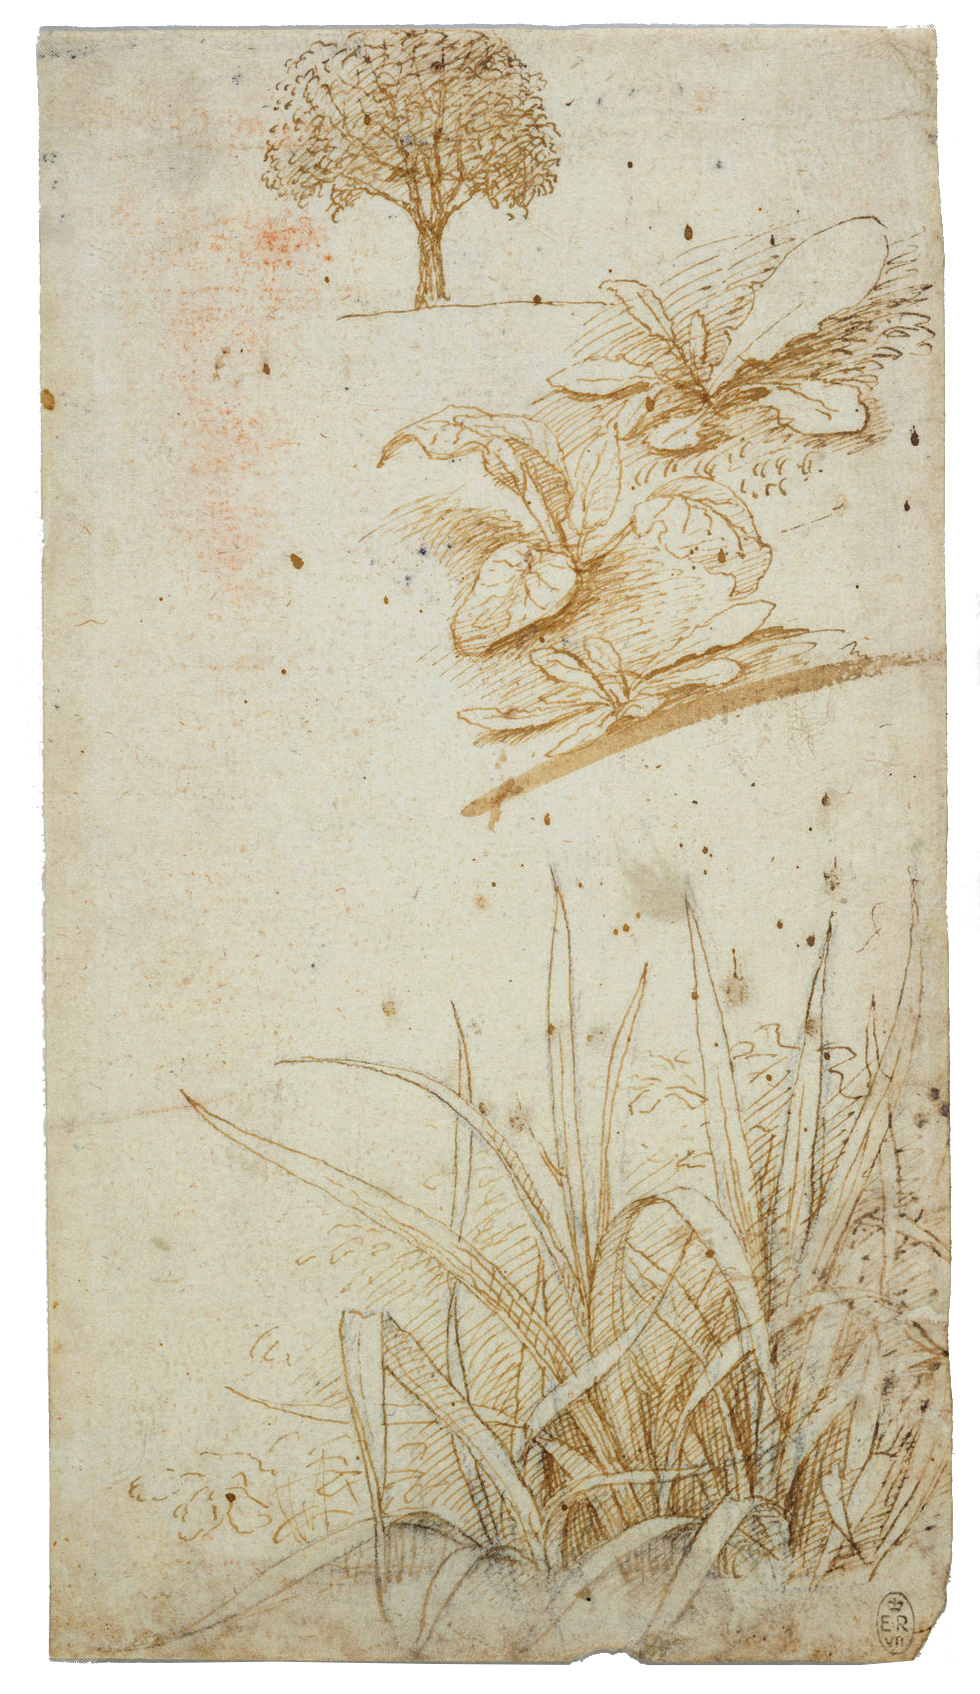 Leonardo da Vinci - Drawings - Plants - 13.jpg